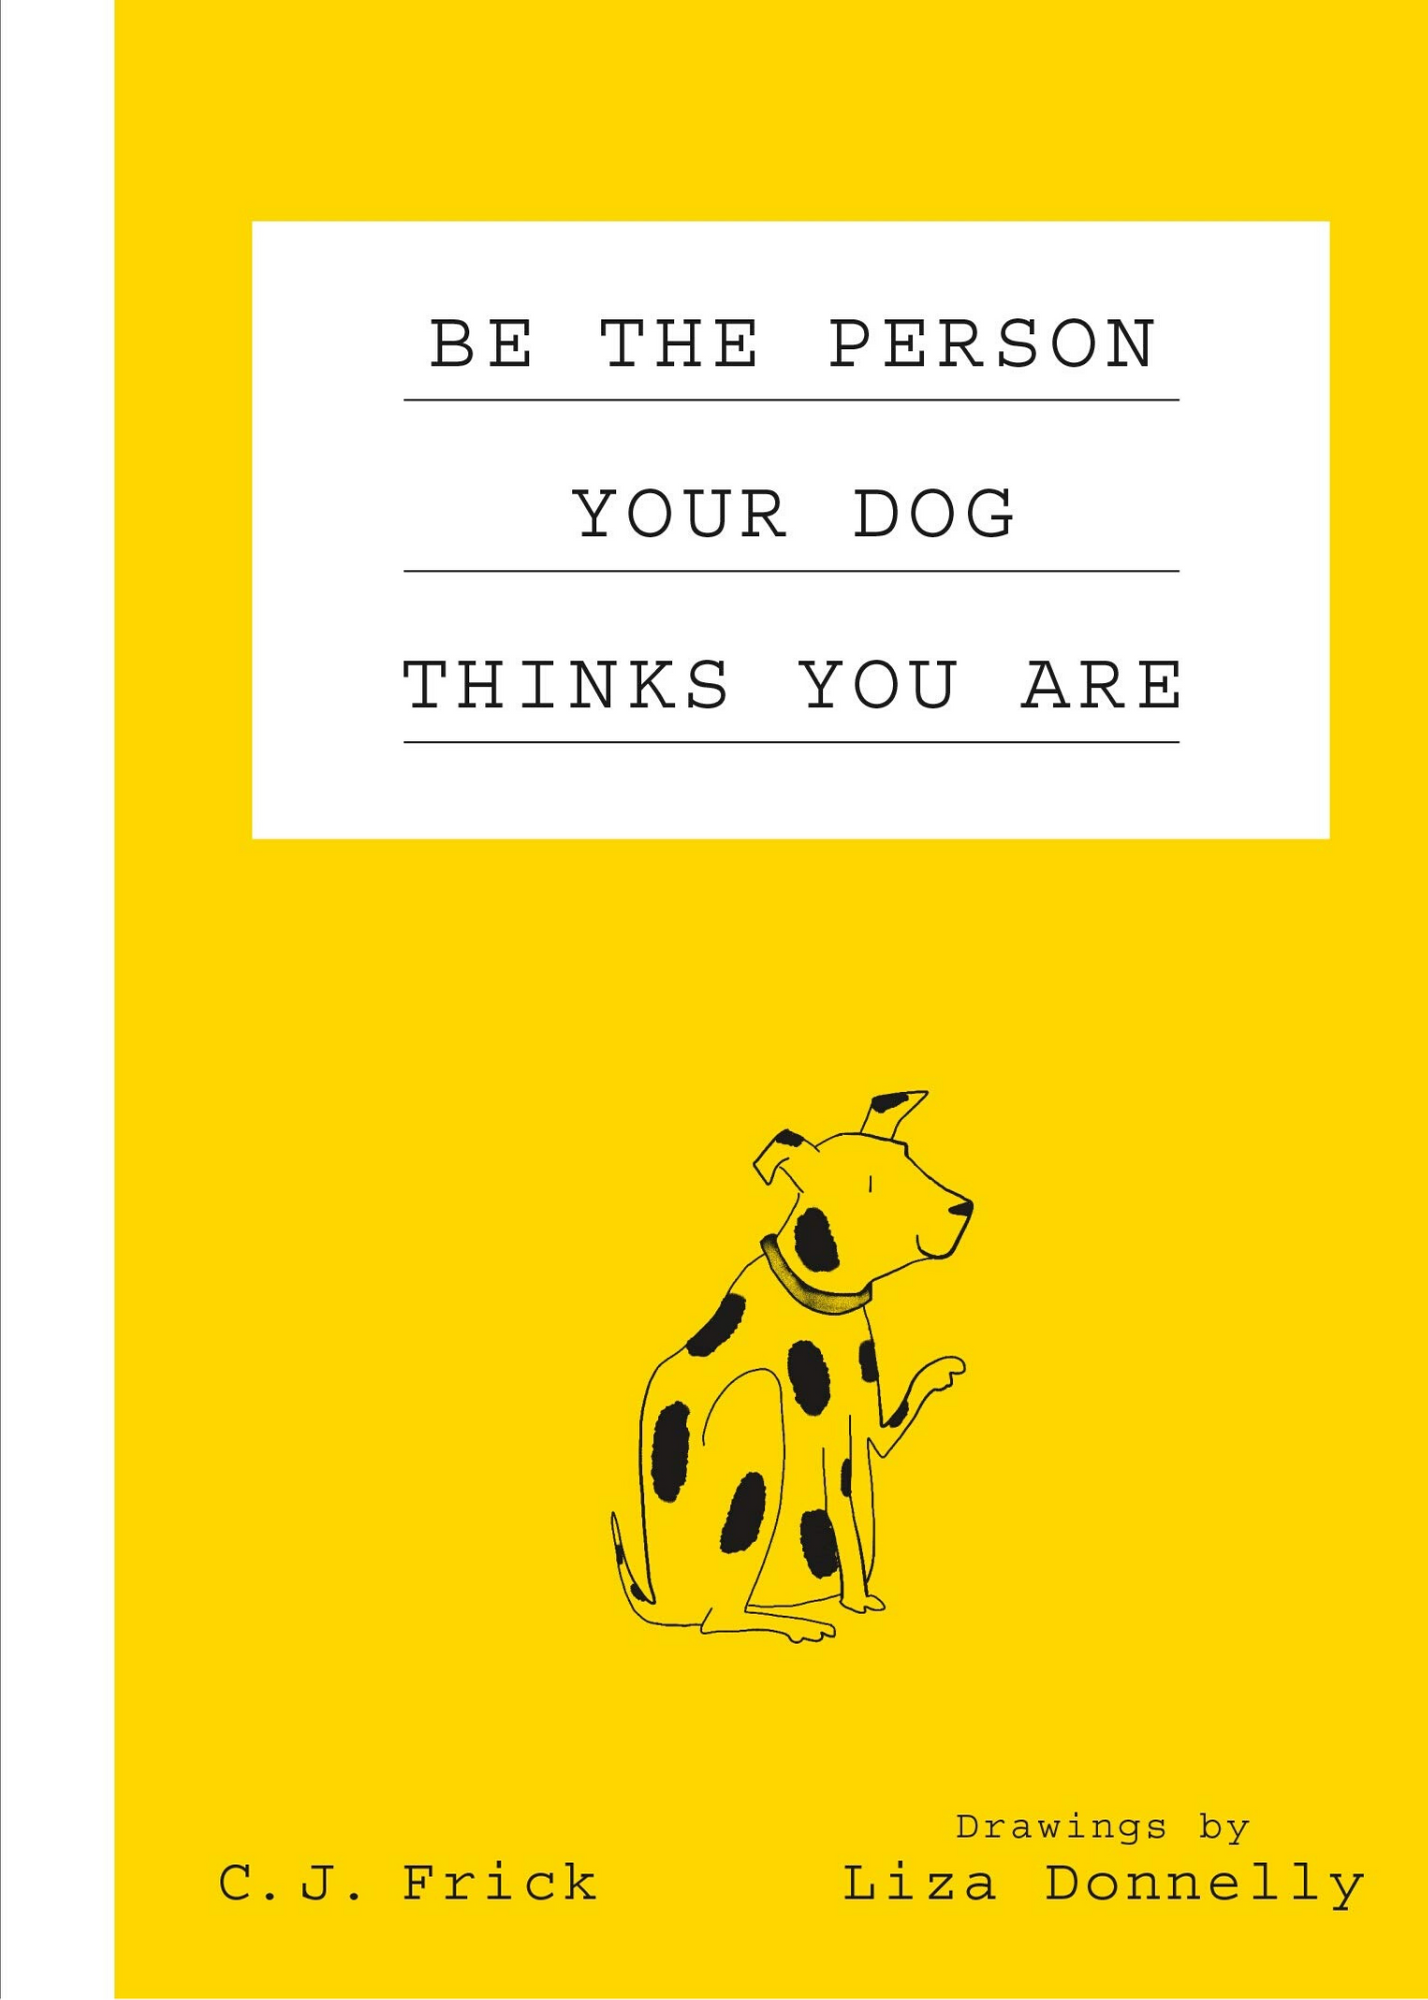 BOOK - Be the Person Your Dog Thinks You Are